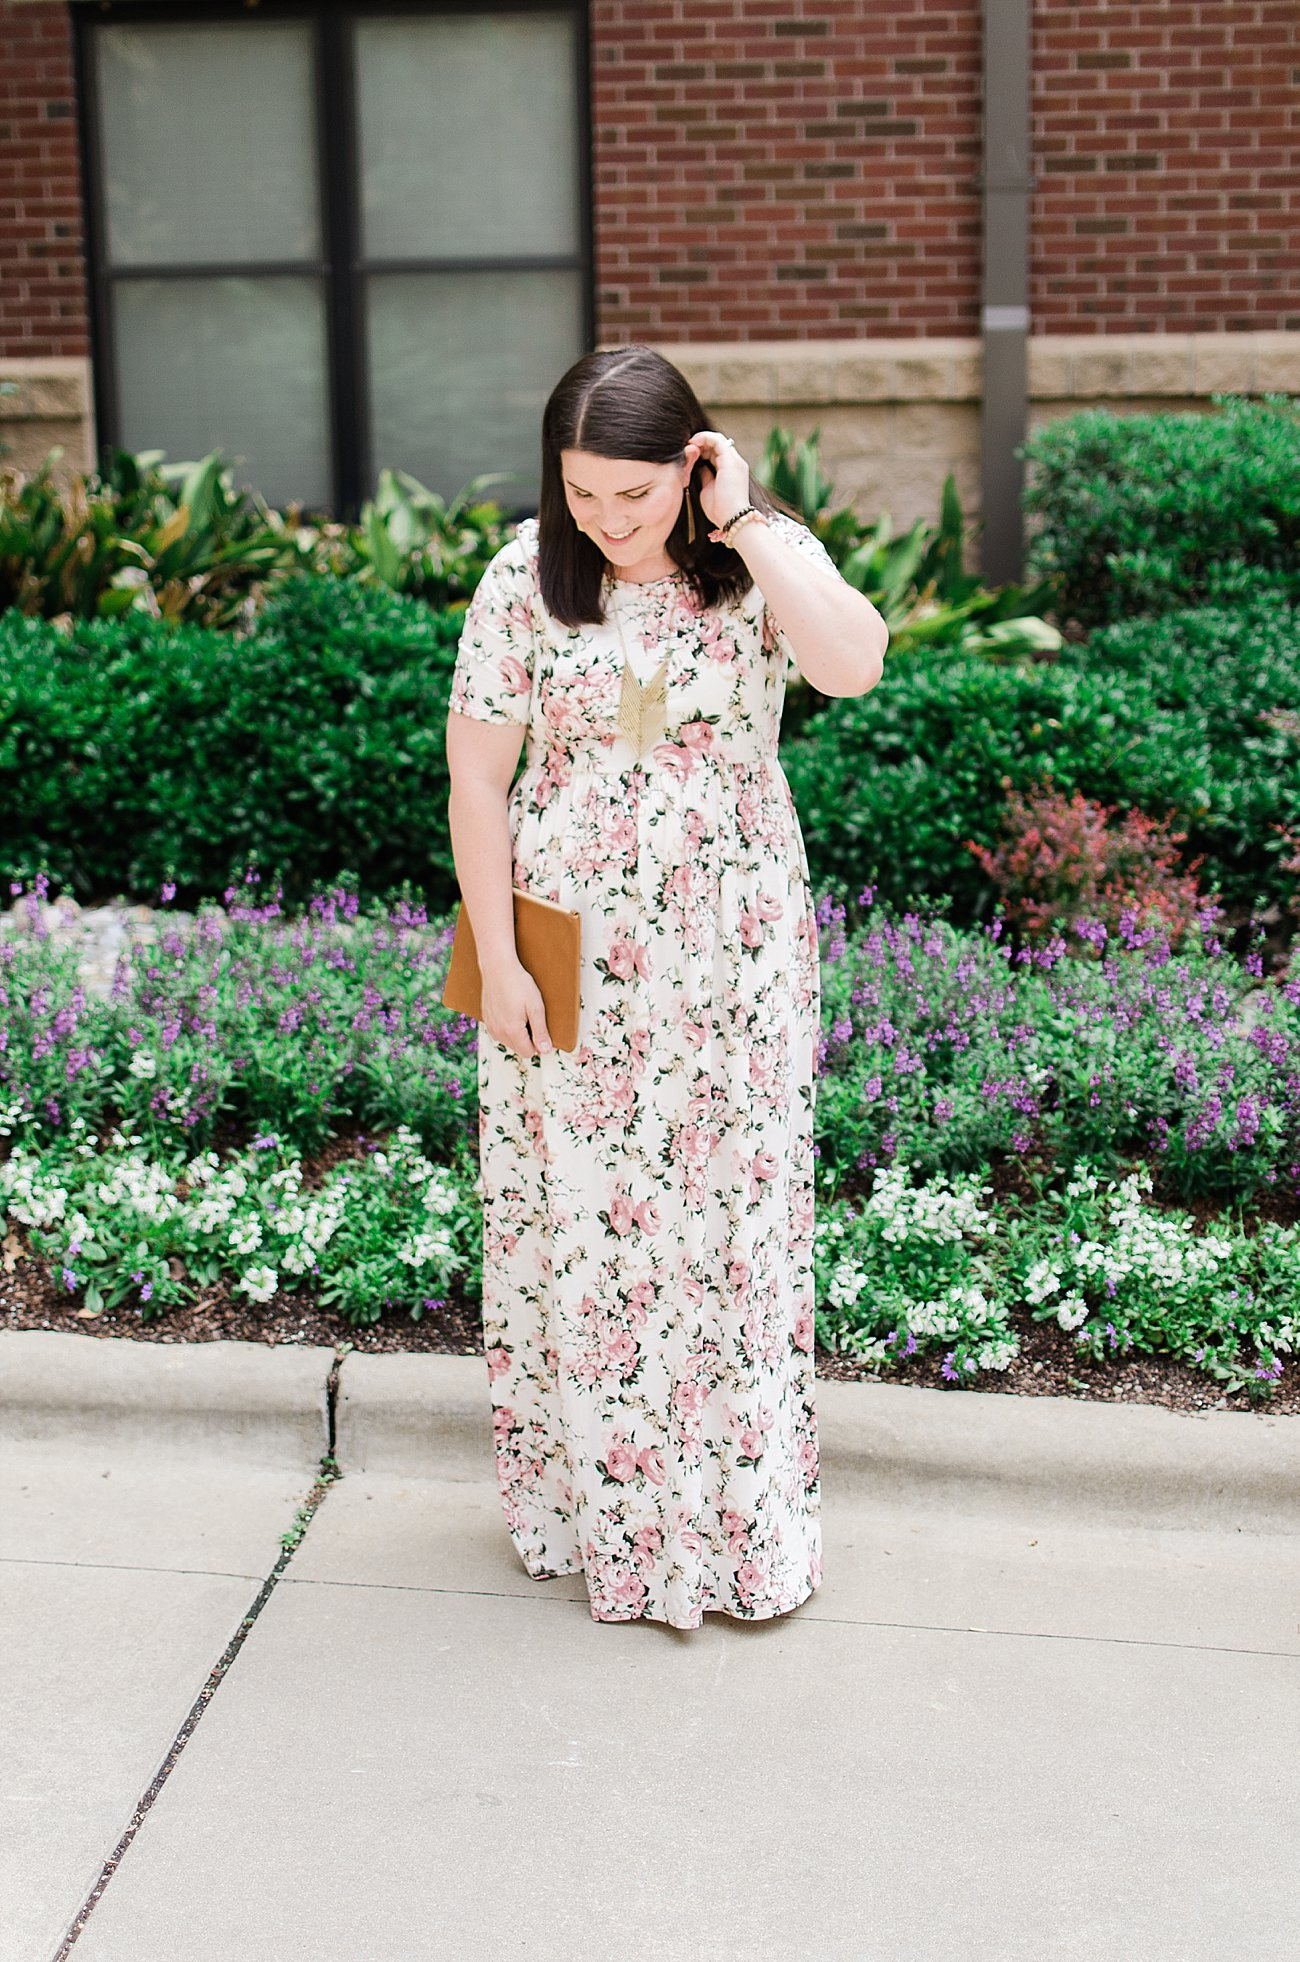 Ethical Wedding Guest Outfit Ideas for Mommy & Me (11)